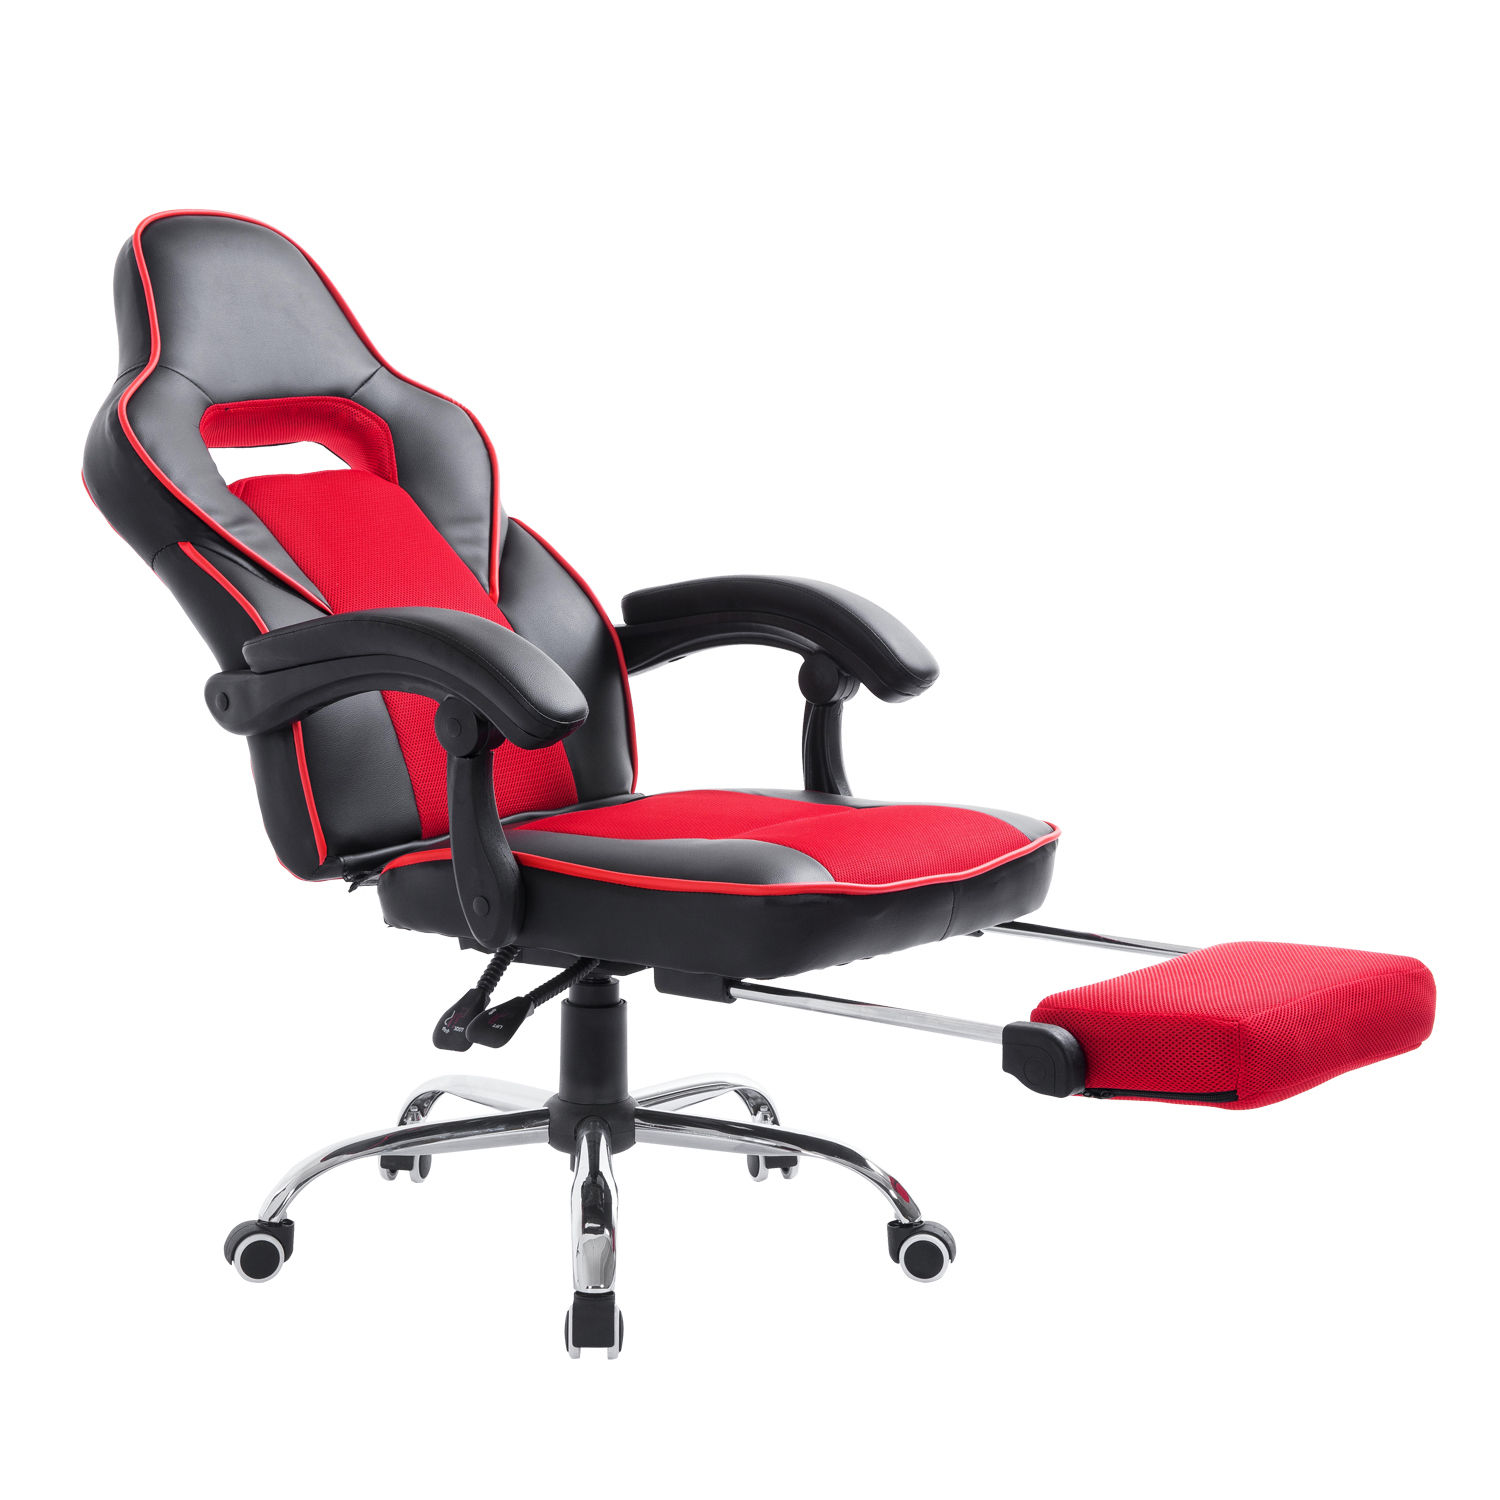 gaming chair with footrest xl zero gravity canopy high back office swivel race car style pu